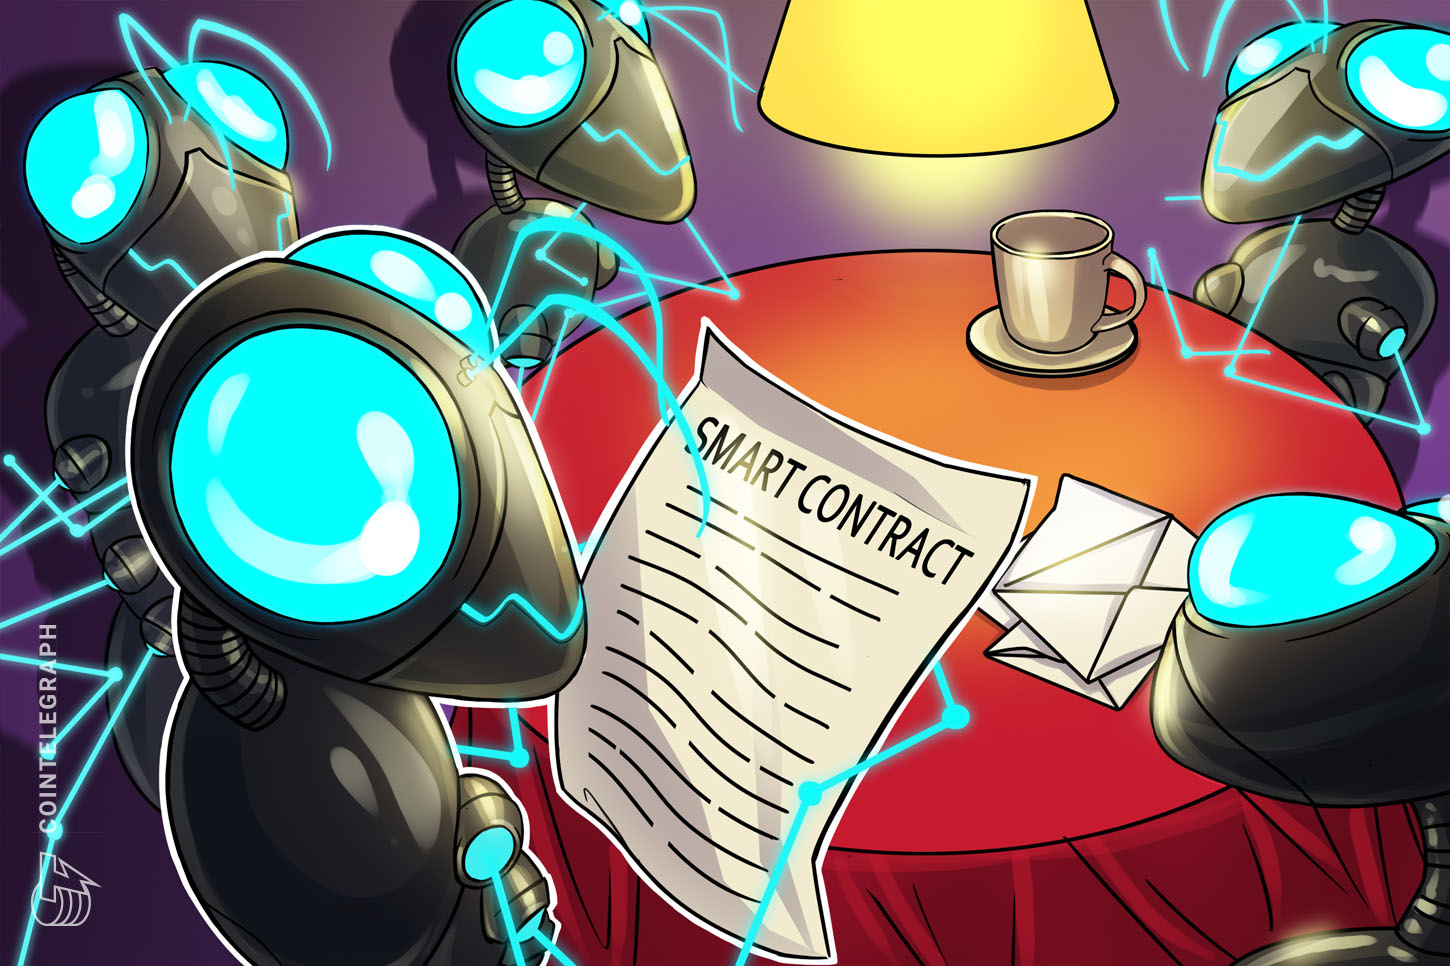 Smart Contracts 'Have Limited Potential' Without IoT Sensors